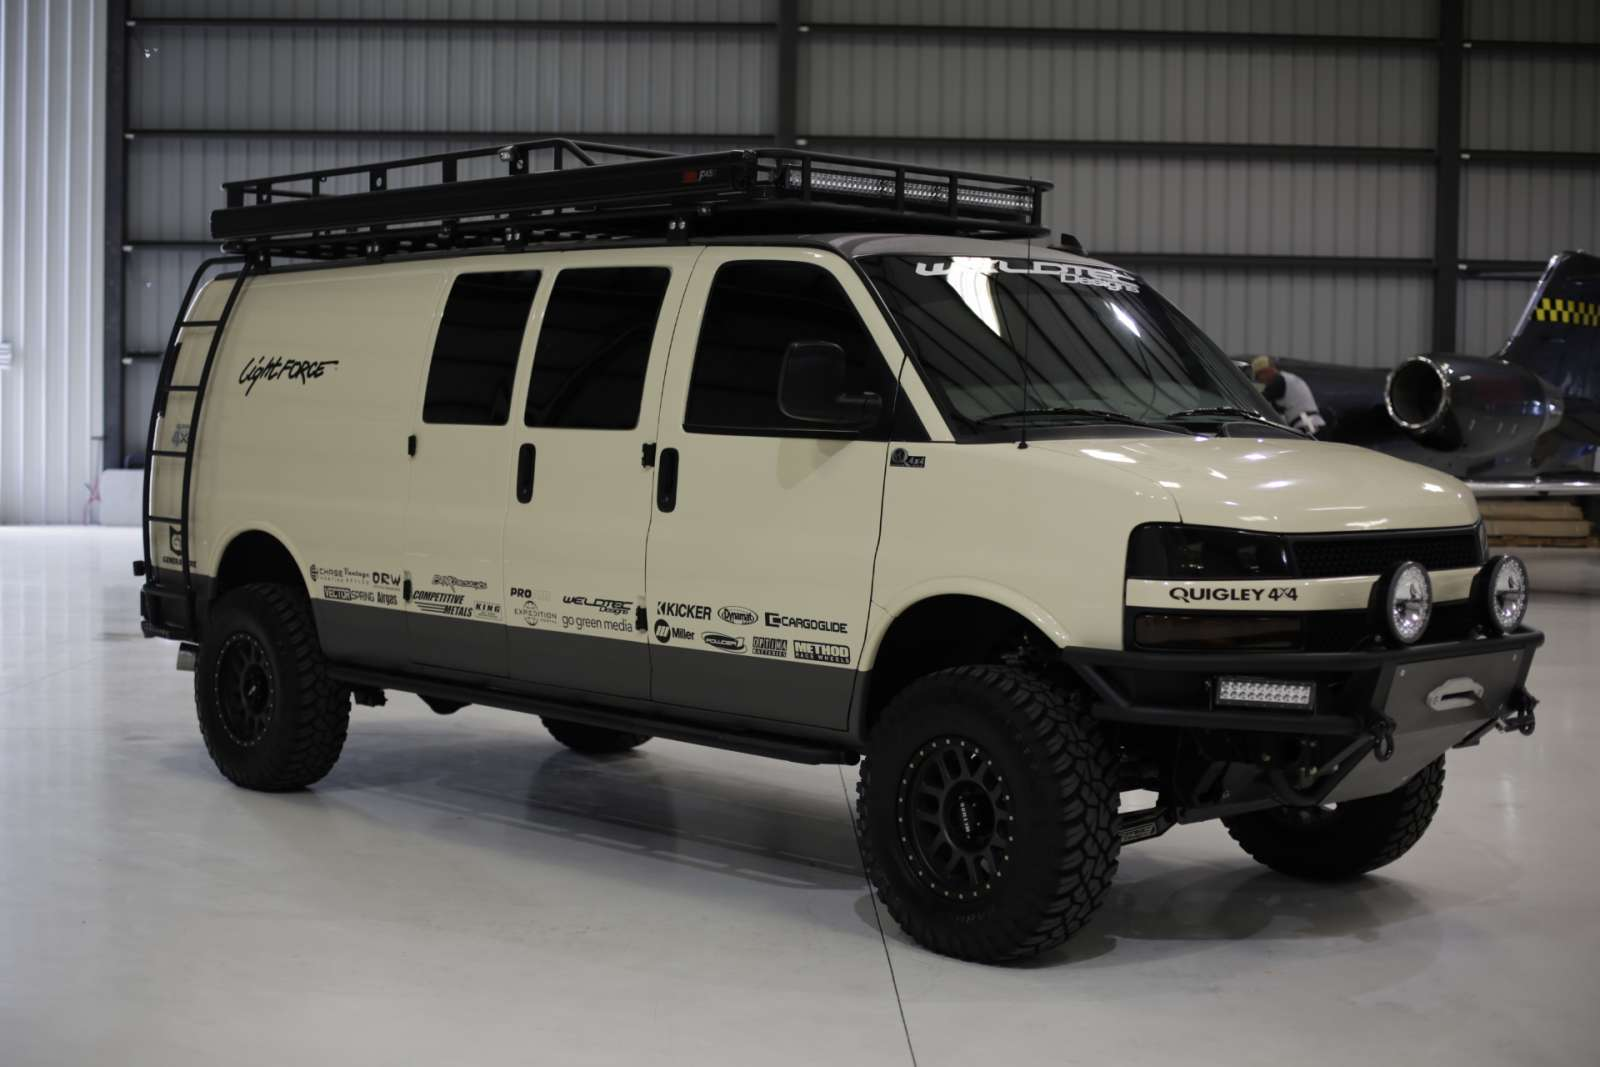 Chevrolet Sema 4x4 Van Build